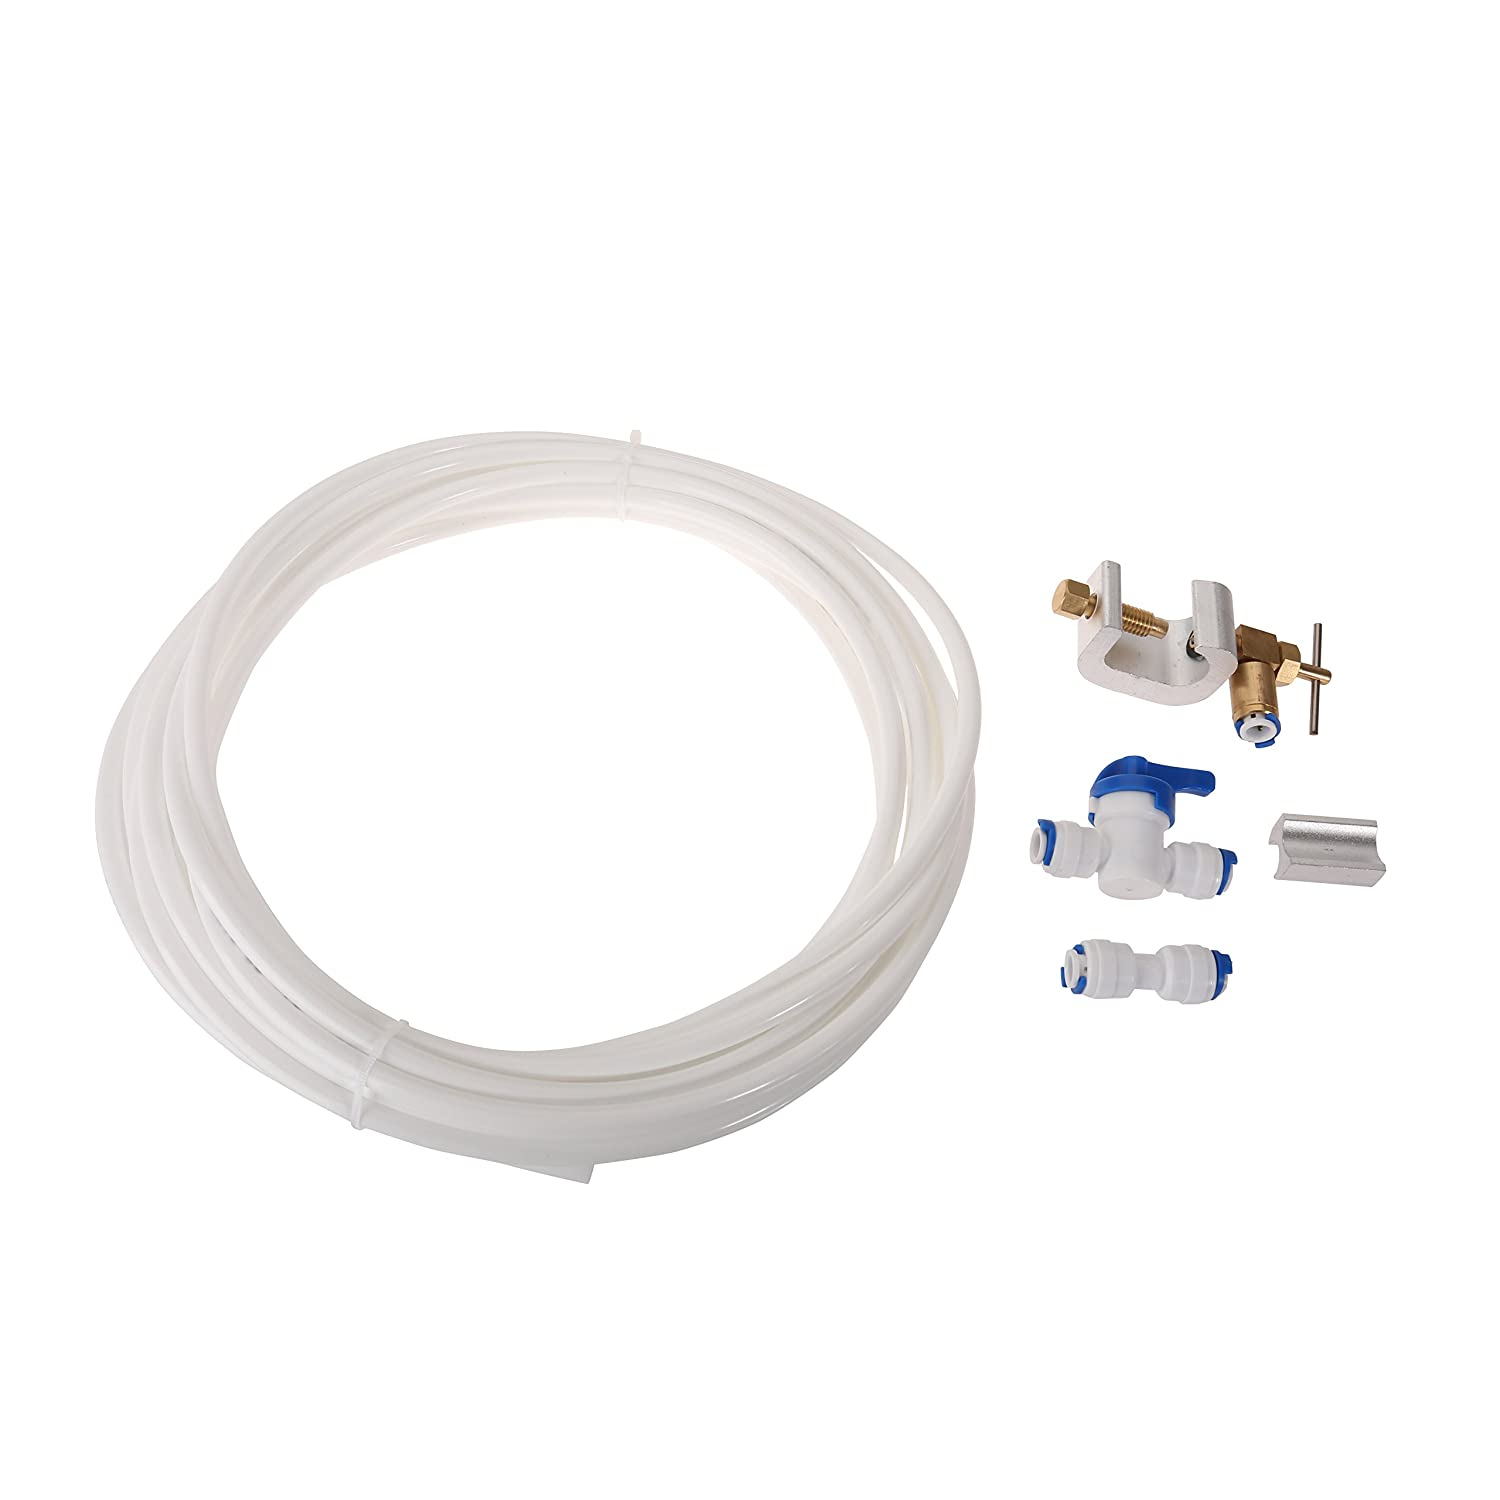 First4Spares Water Supply Pipe Tube + Fridge Connector Kit For Samsung American Style Double Fridge / Refrigerator (1/4